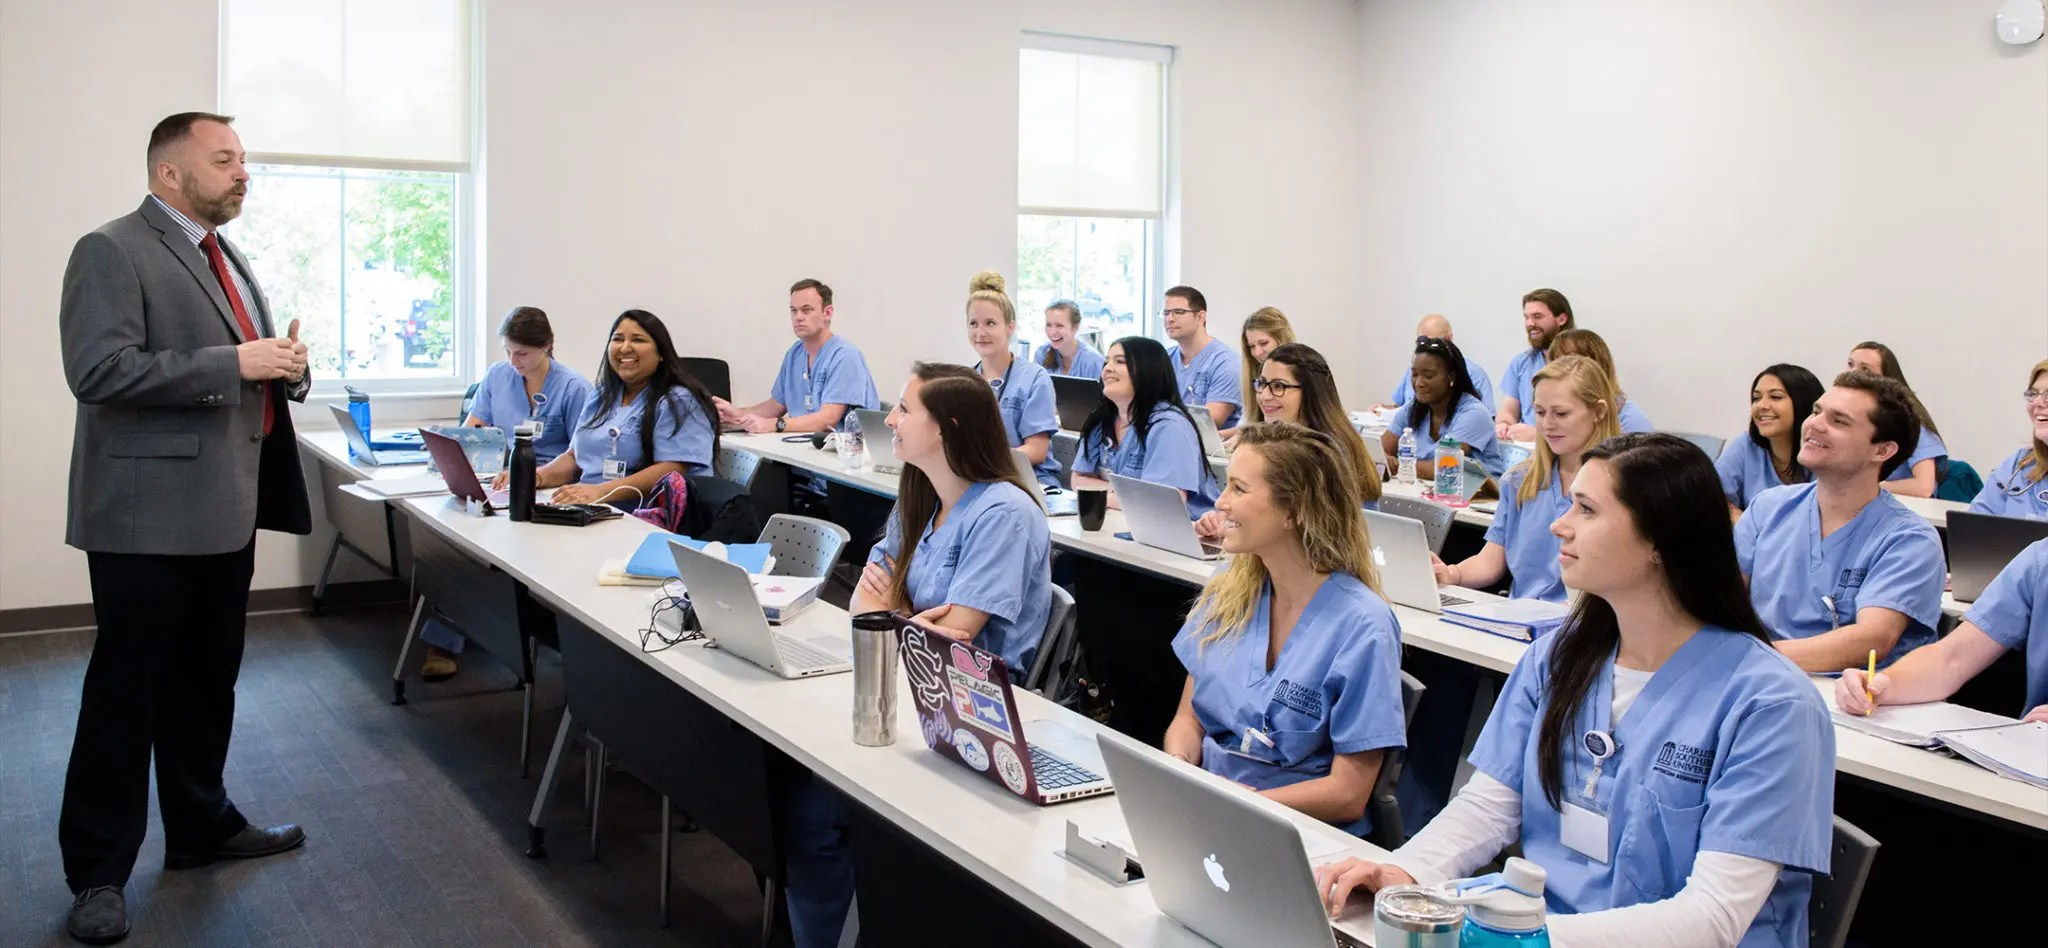 Physician Assistant classroom with a professor speaking at the front of it.